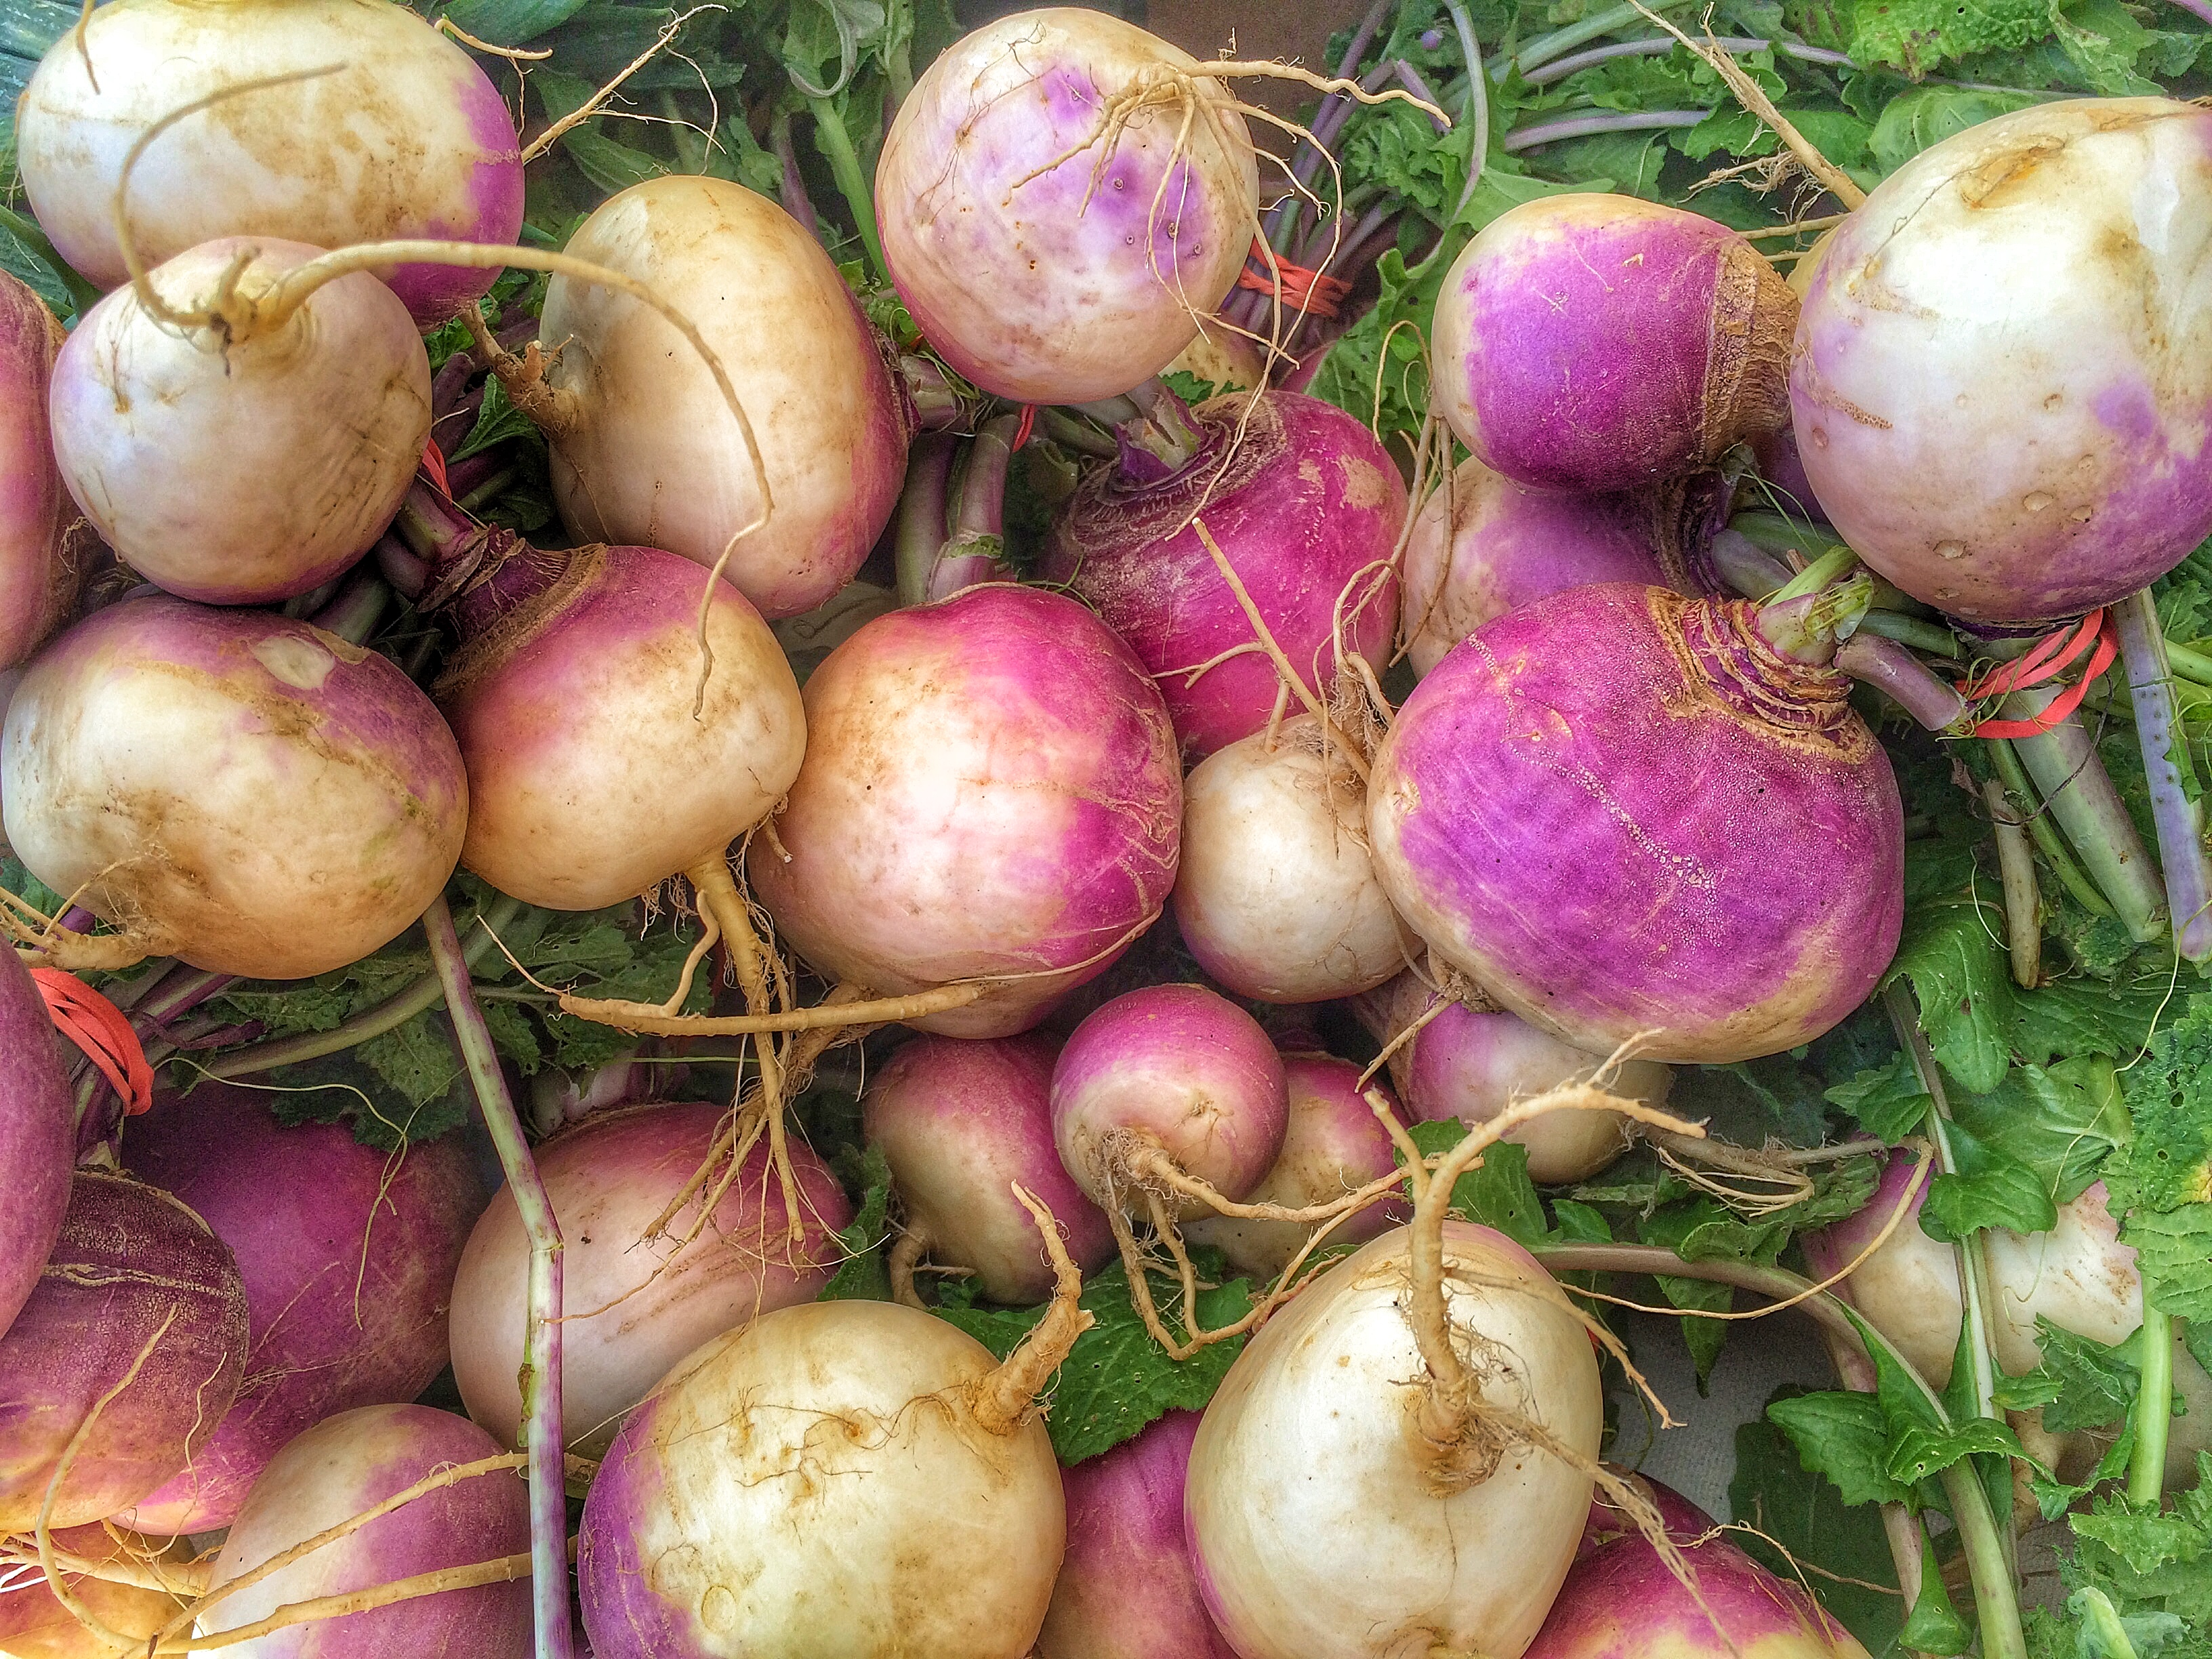 Turnips at the Fiddler's Green Stand